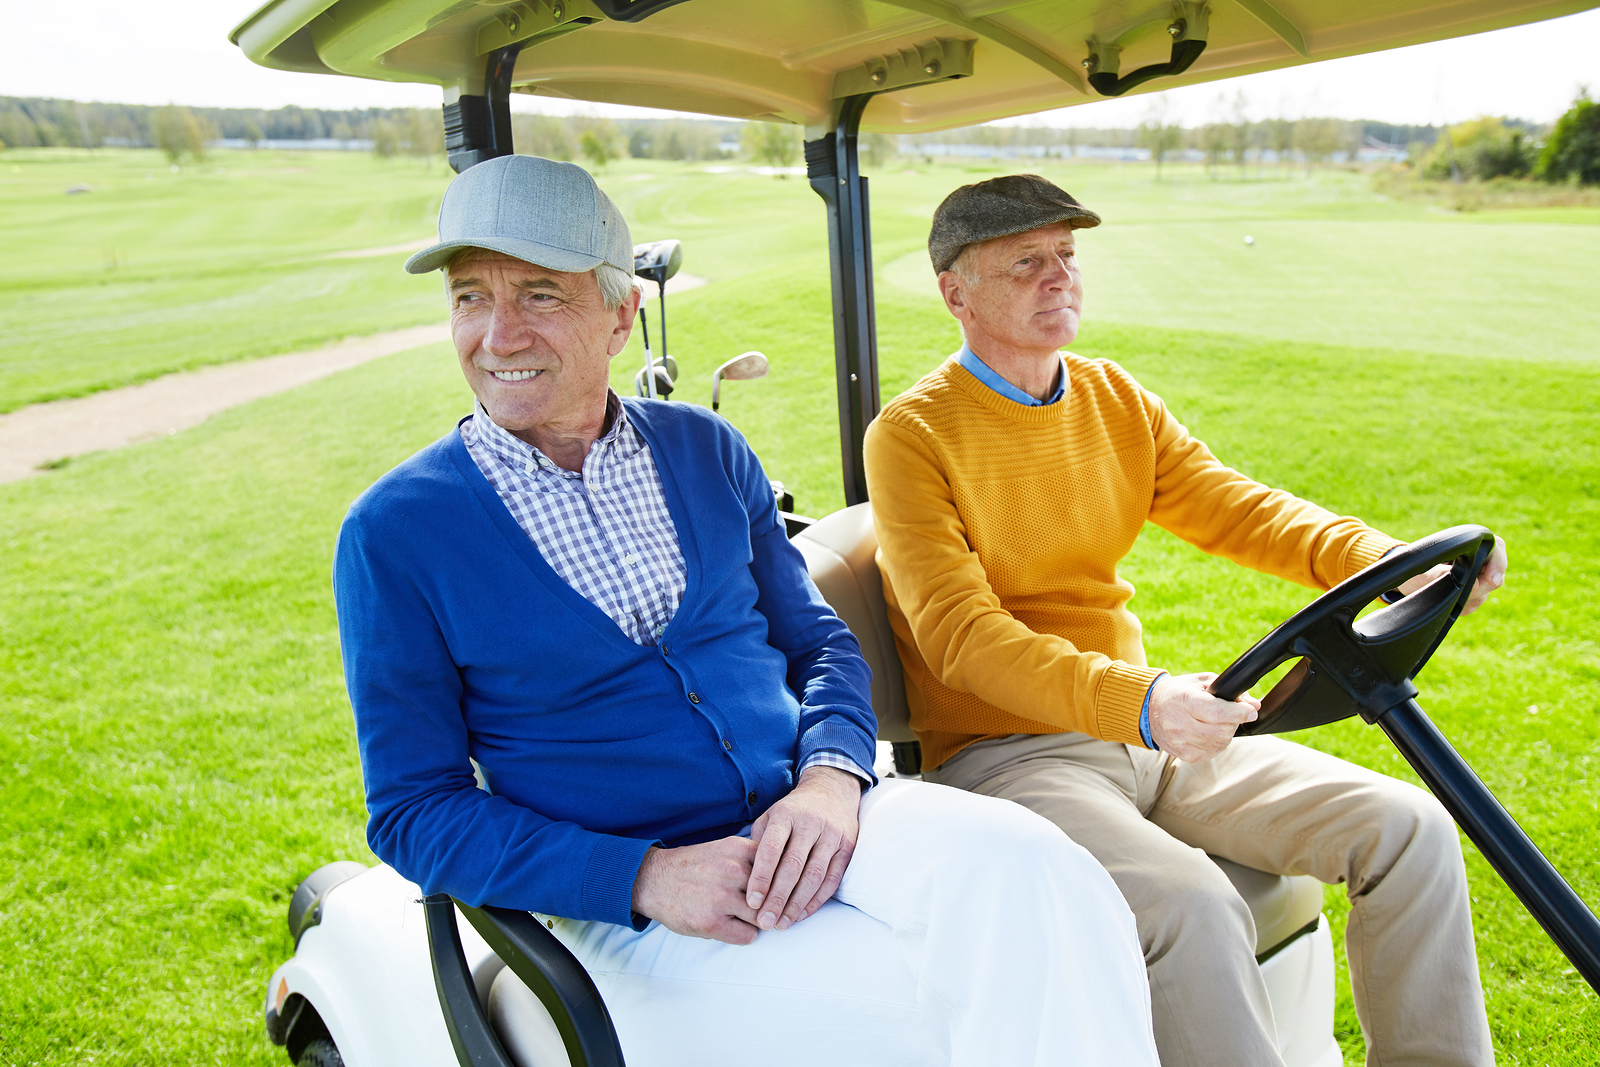 Geezers Golf gets seniors back on the course